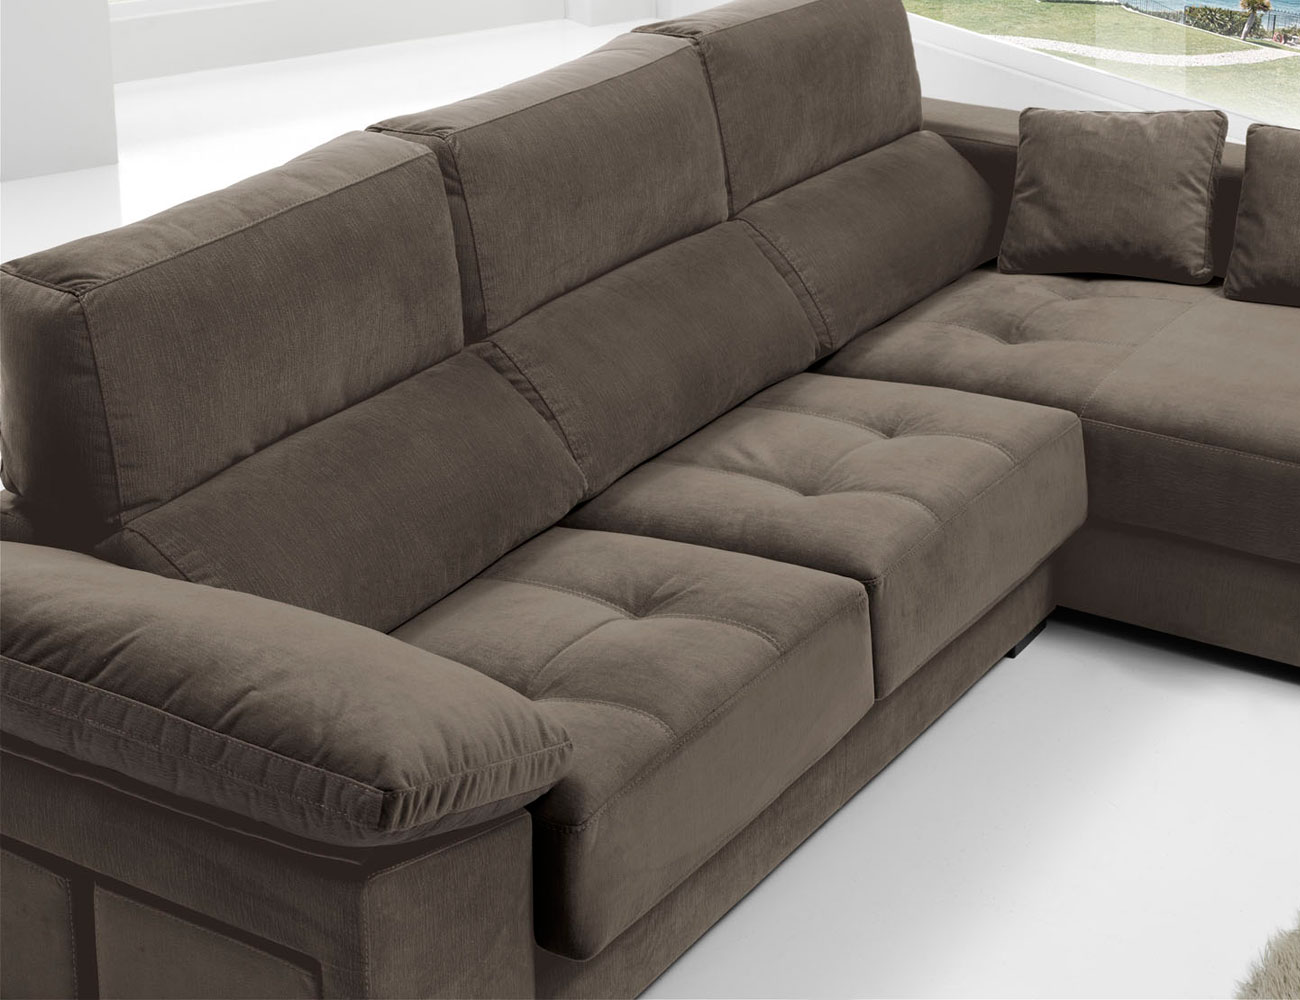 Sofa chaiselongue anti manchas bering pouf 262